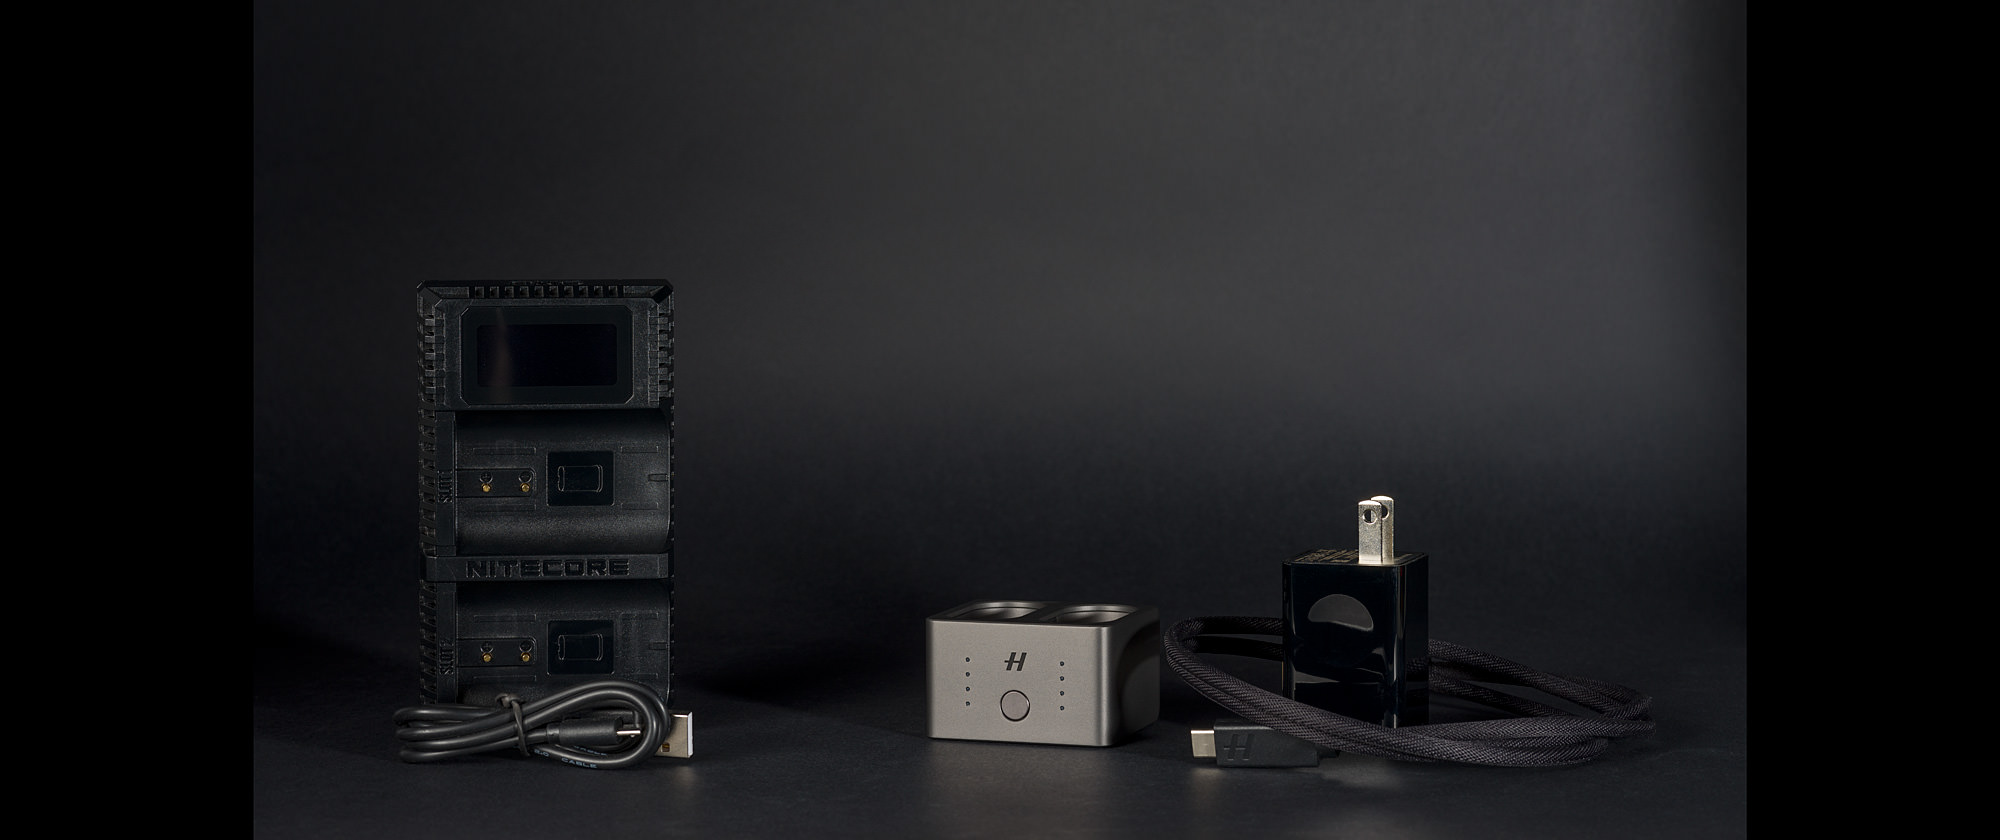 Nitecore & Hasselblad Dual Charger for Hasselblad X1D